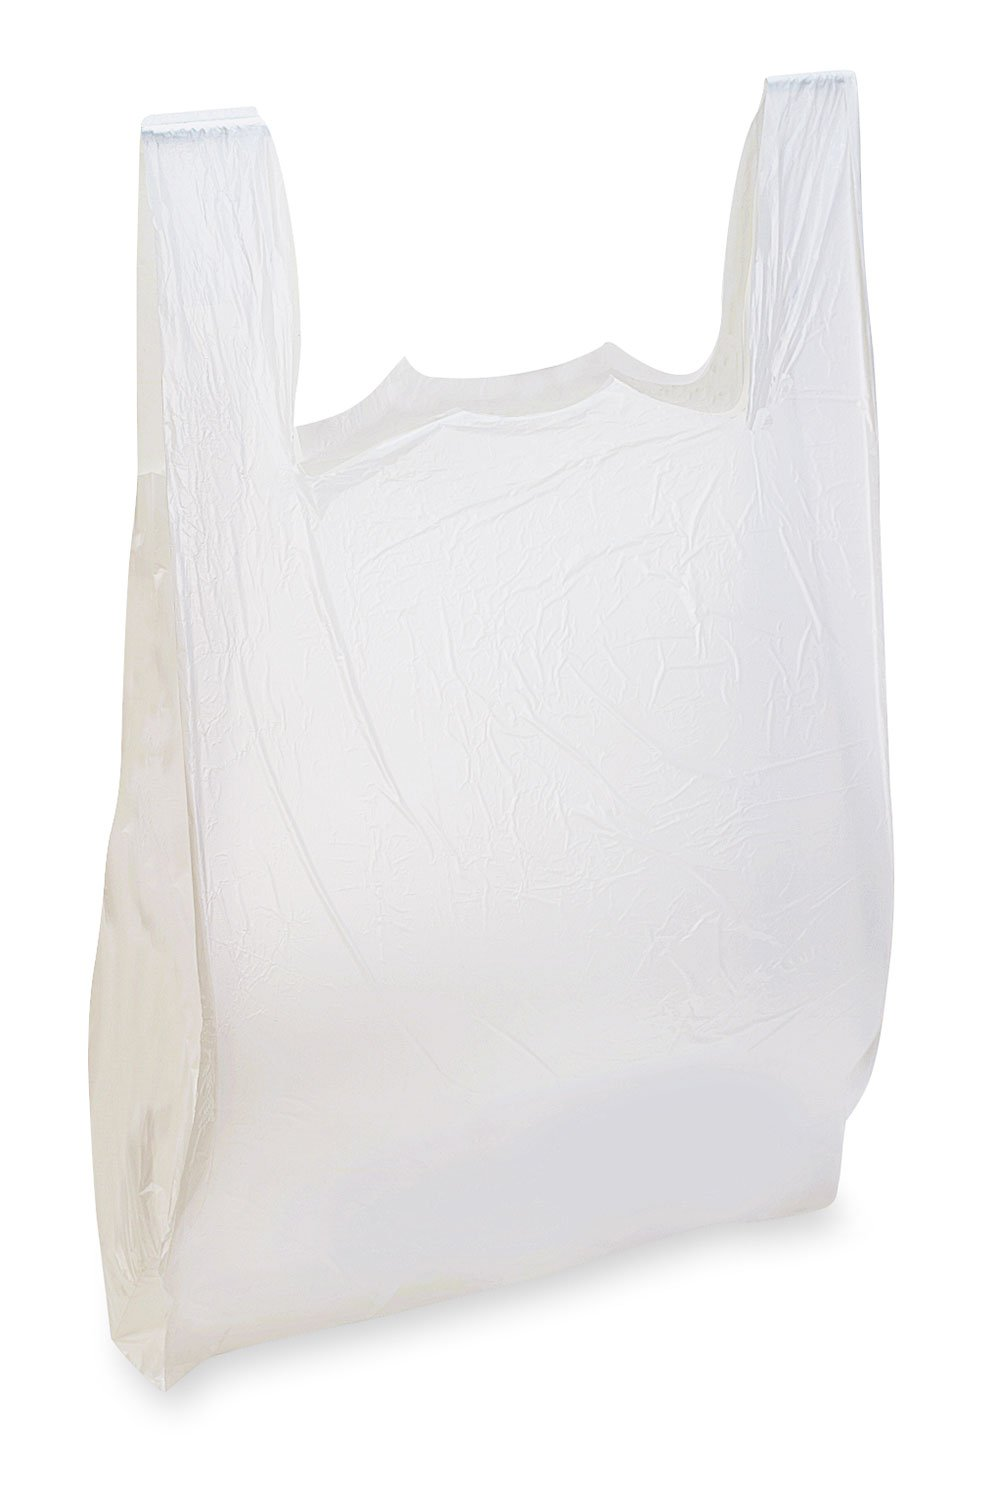 "White Plastic T-Shirt Bags - HDPE (11 ½"" x 6""x 21"") Standard Size - Case of 1,000"